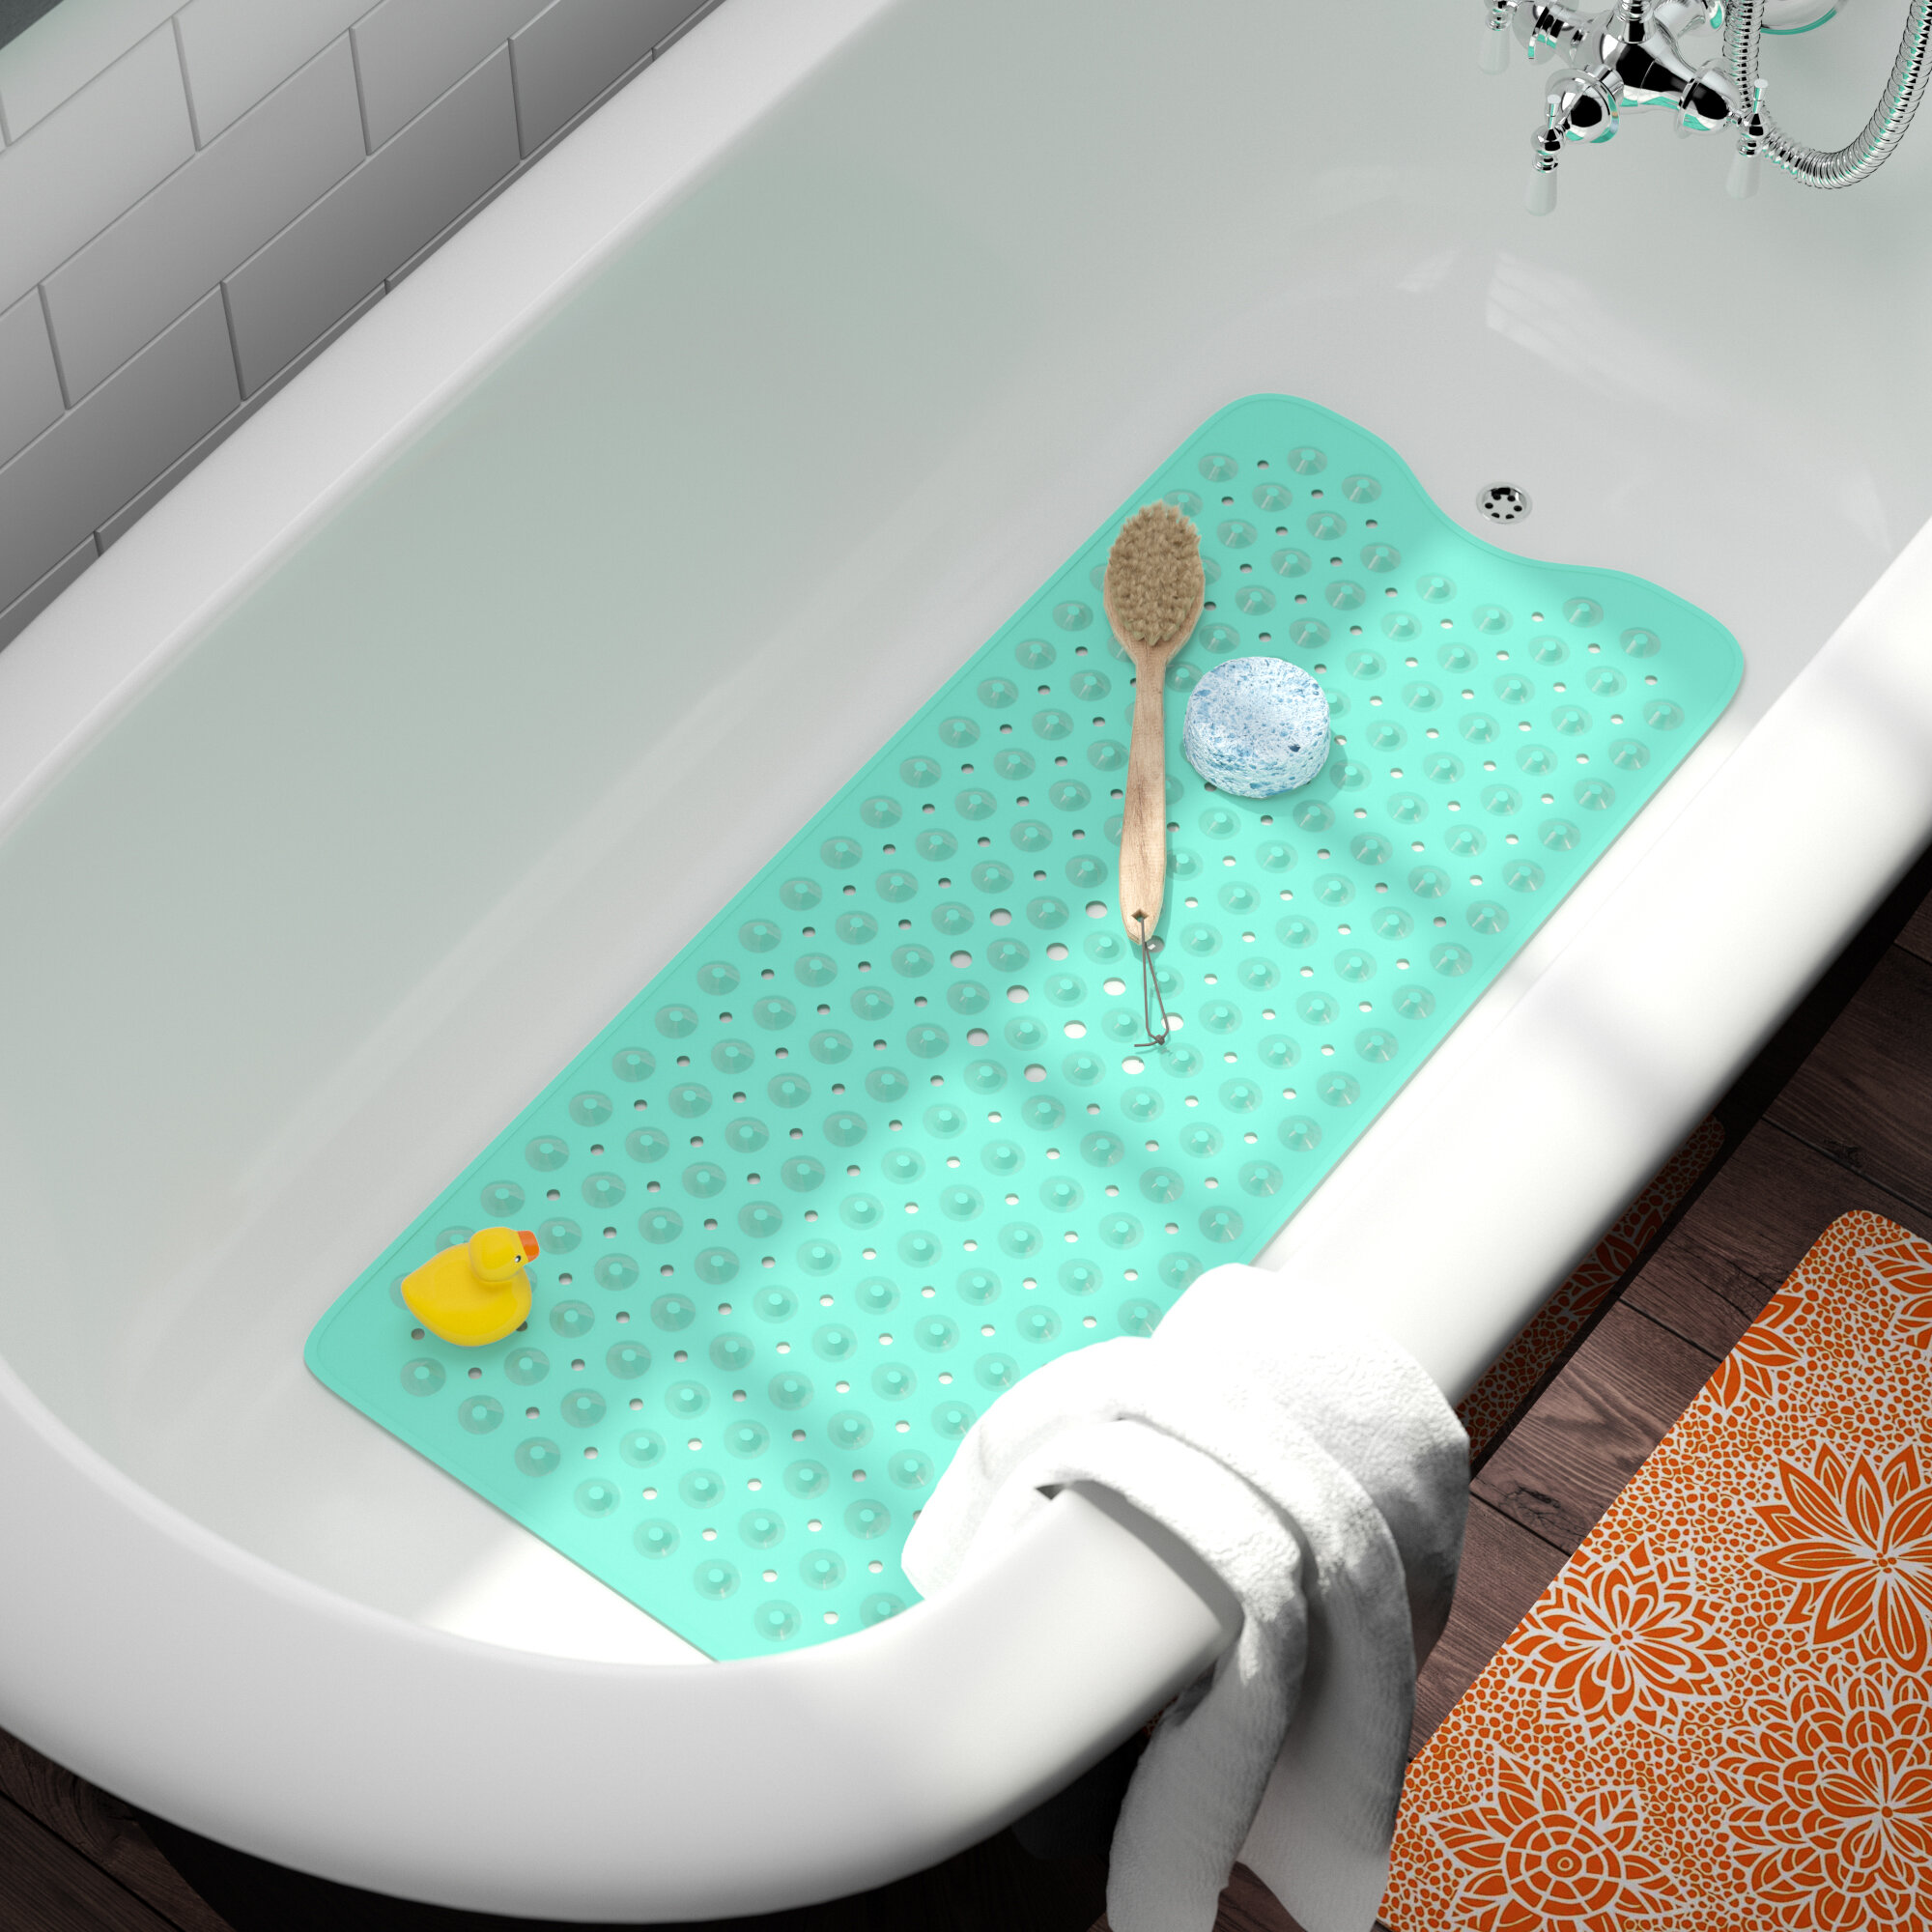 Ebern Designs Nakagawa Large Vinyl Bathtub Mat & Reviews | Wayfair